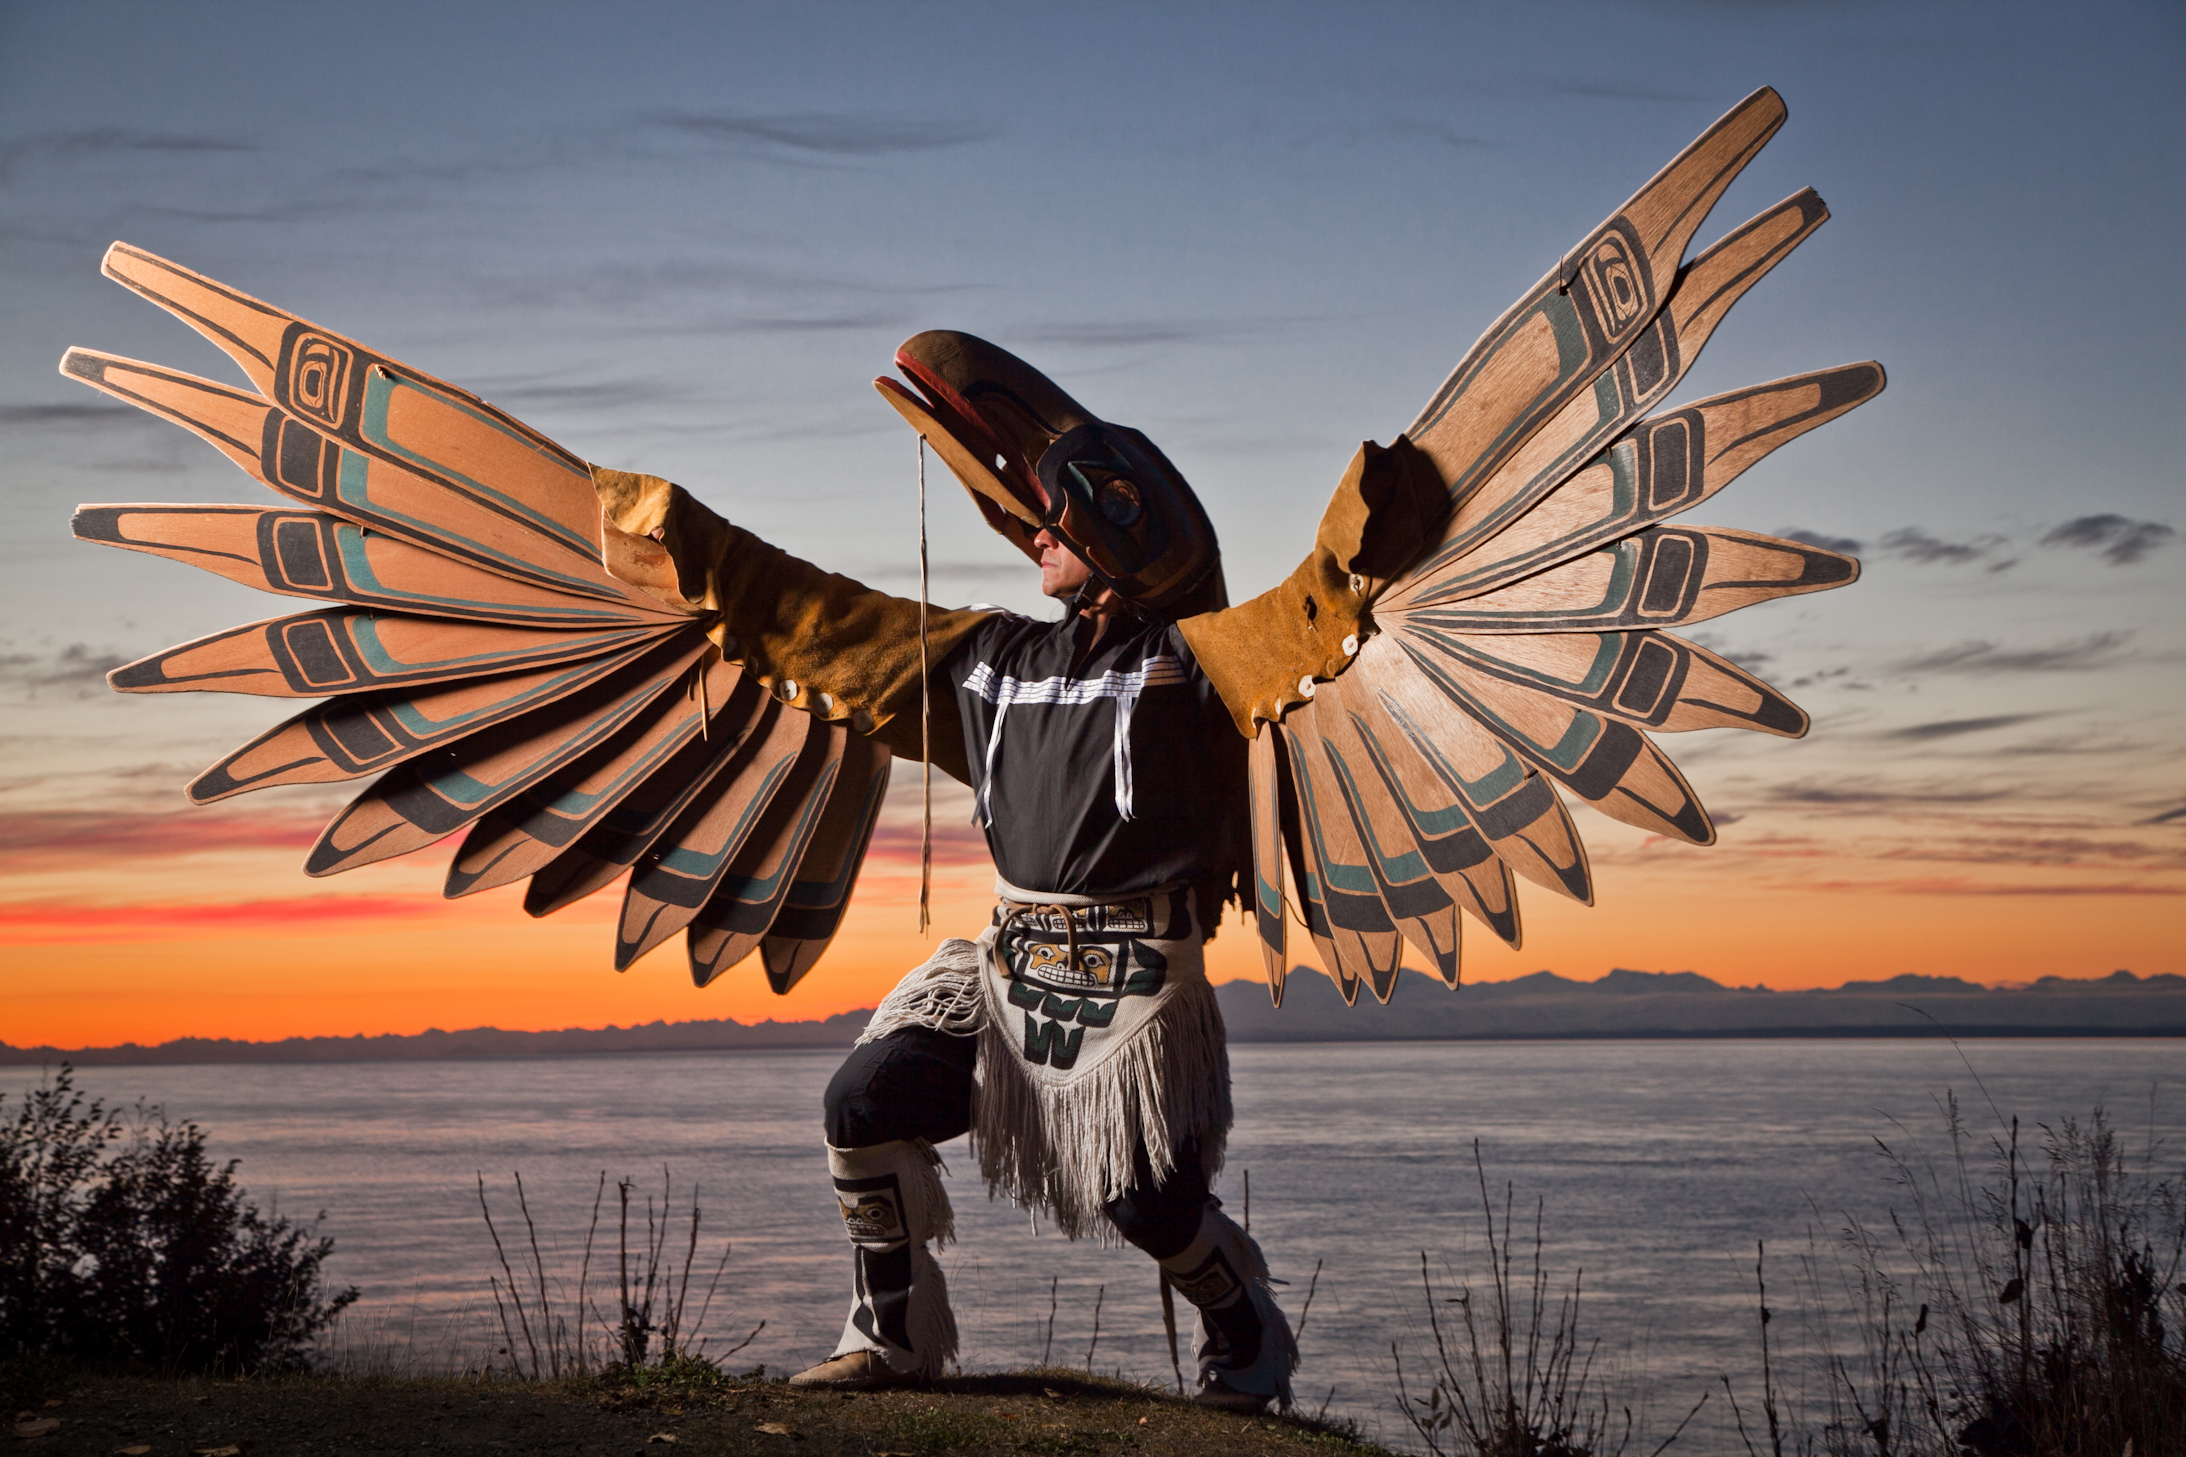 Inspirational performing artist and storyteller, Gene Tagaban, with his Raven Spirit costume, Anchorage, Alaska